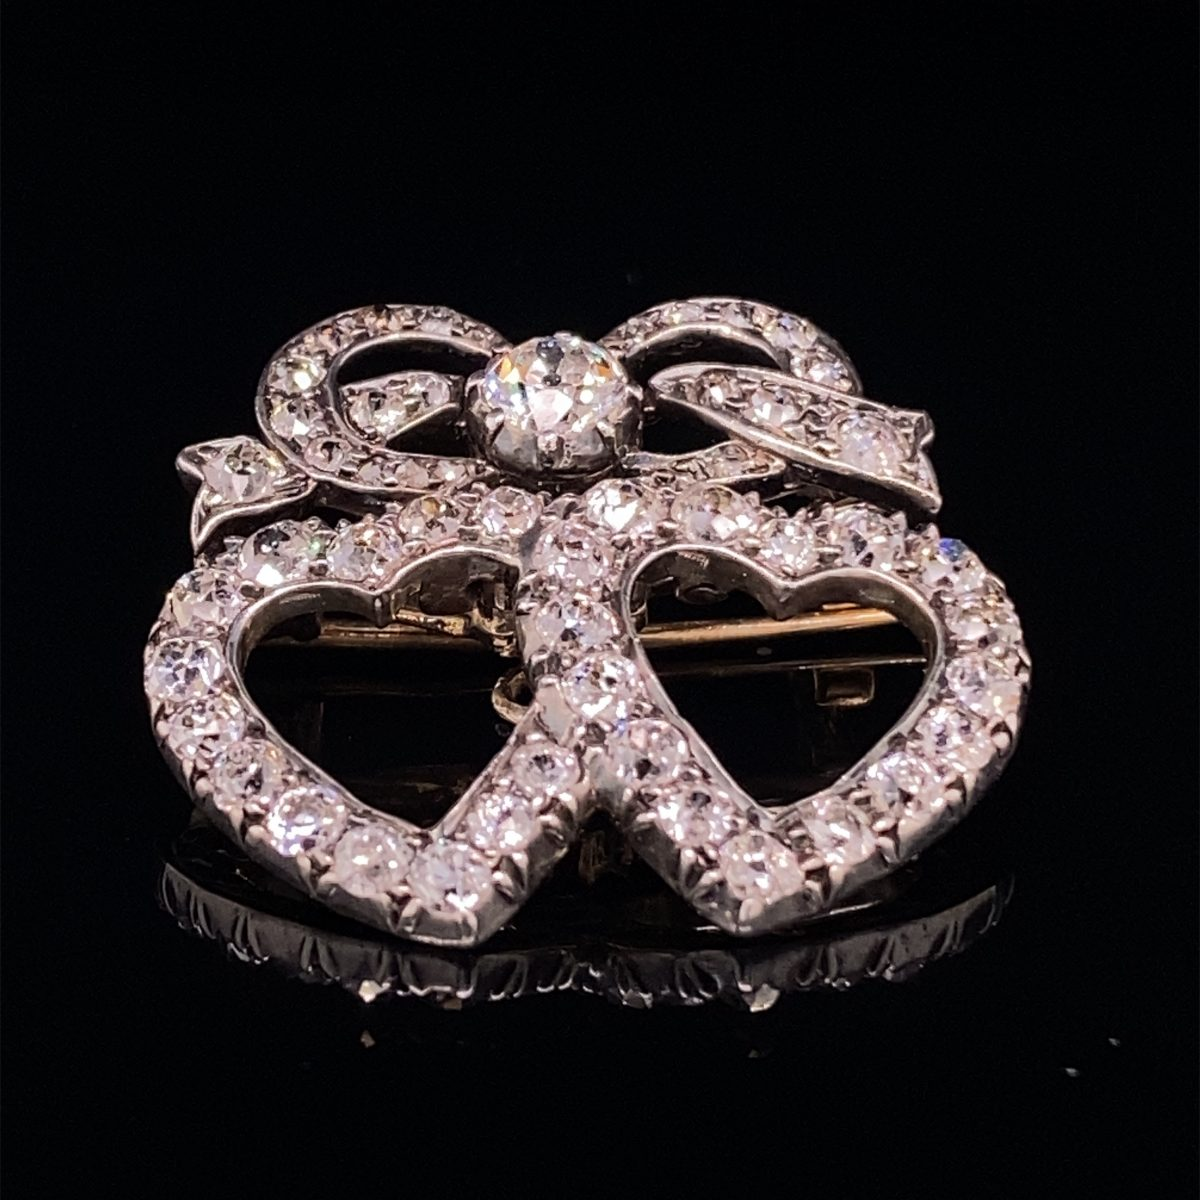 Victorian diamond 'Lovers Entwined Hearts' brooch